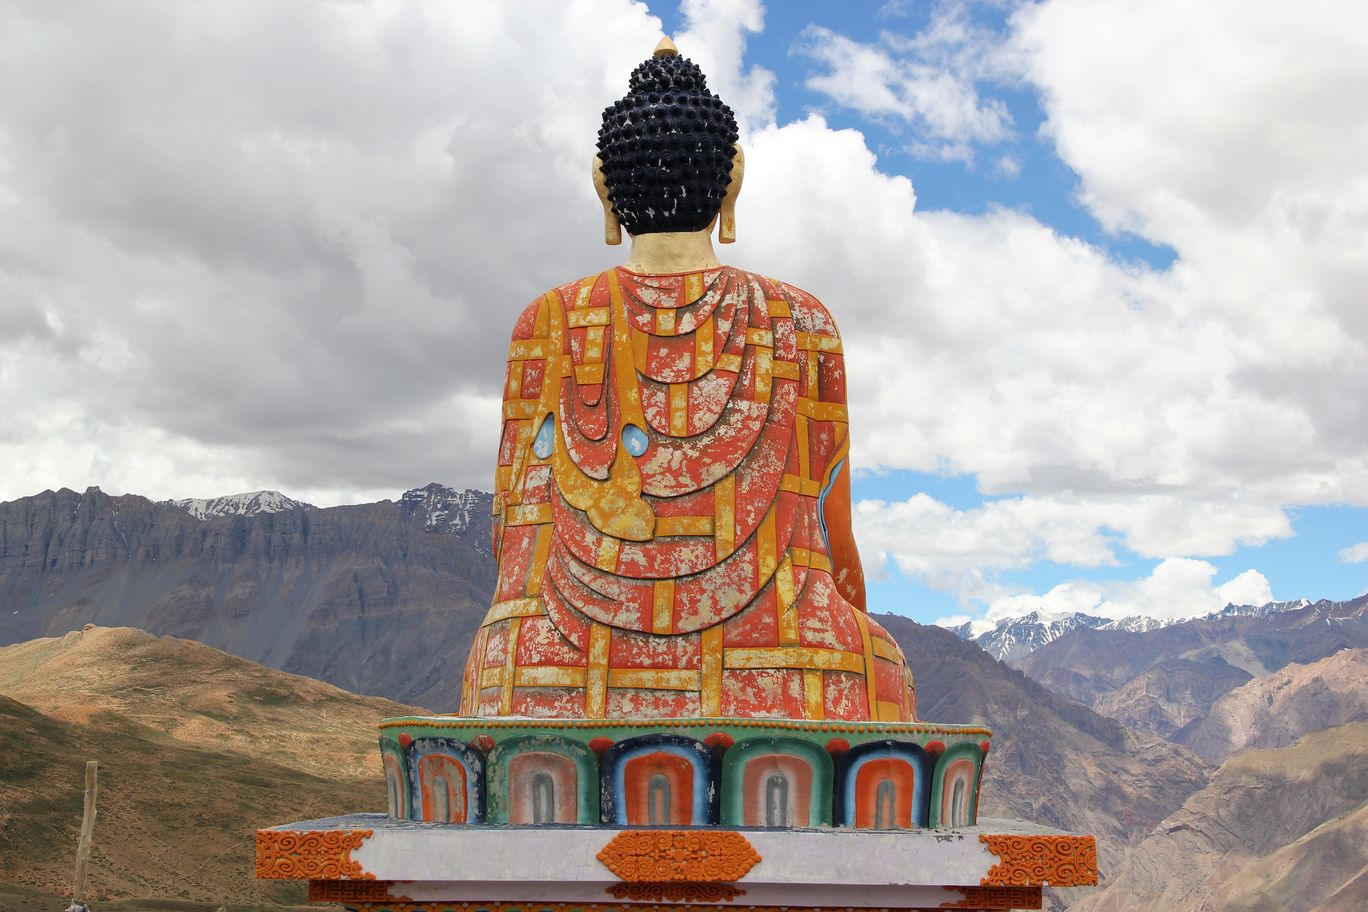 Photo of Langza Buddha Statue By Shweta Aggarwal